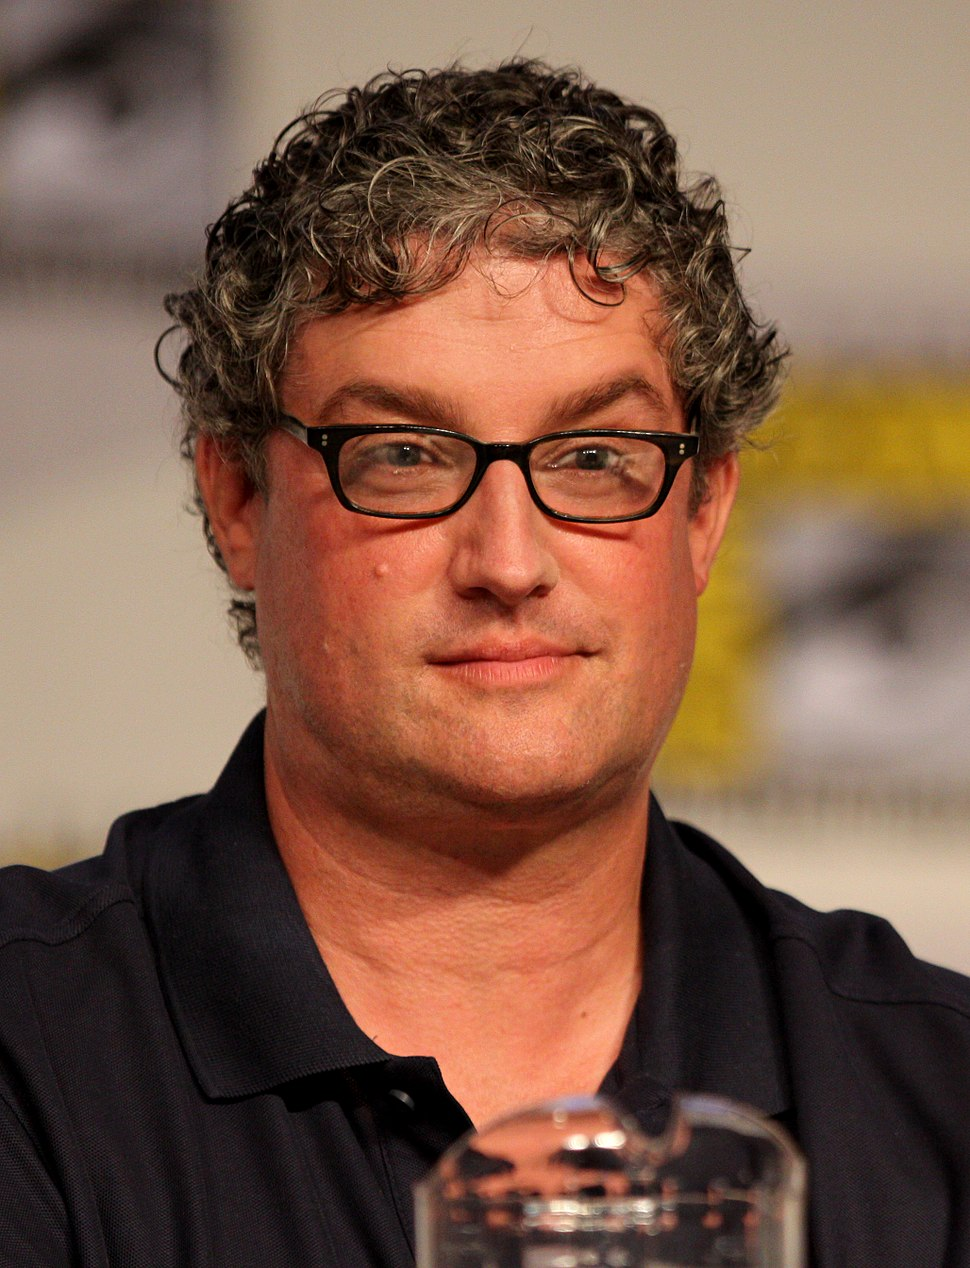 A man with glasses and a black shirt sits in front of a microphone.